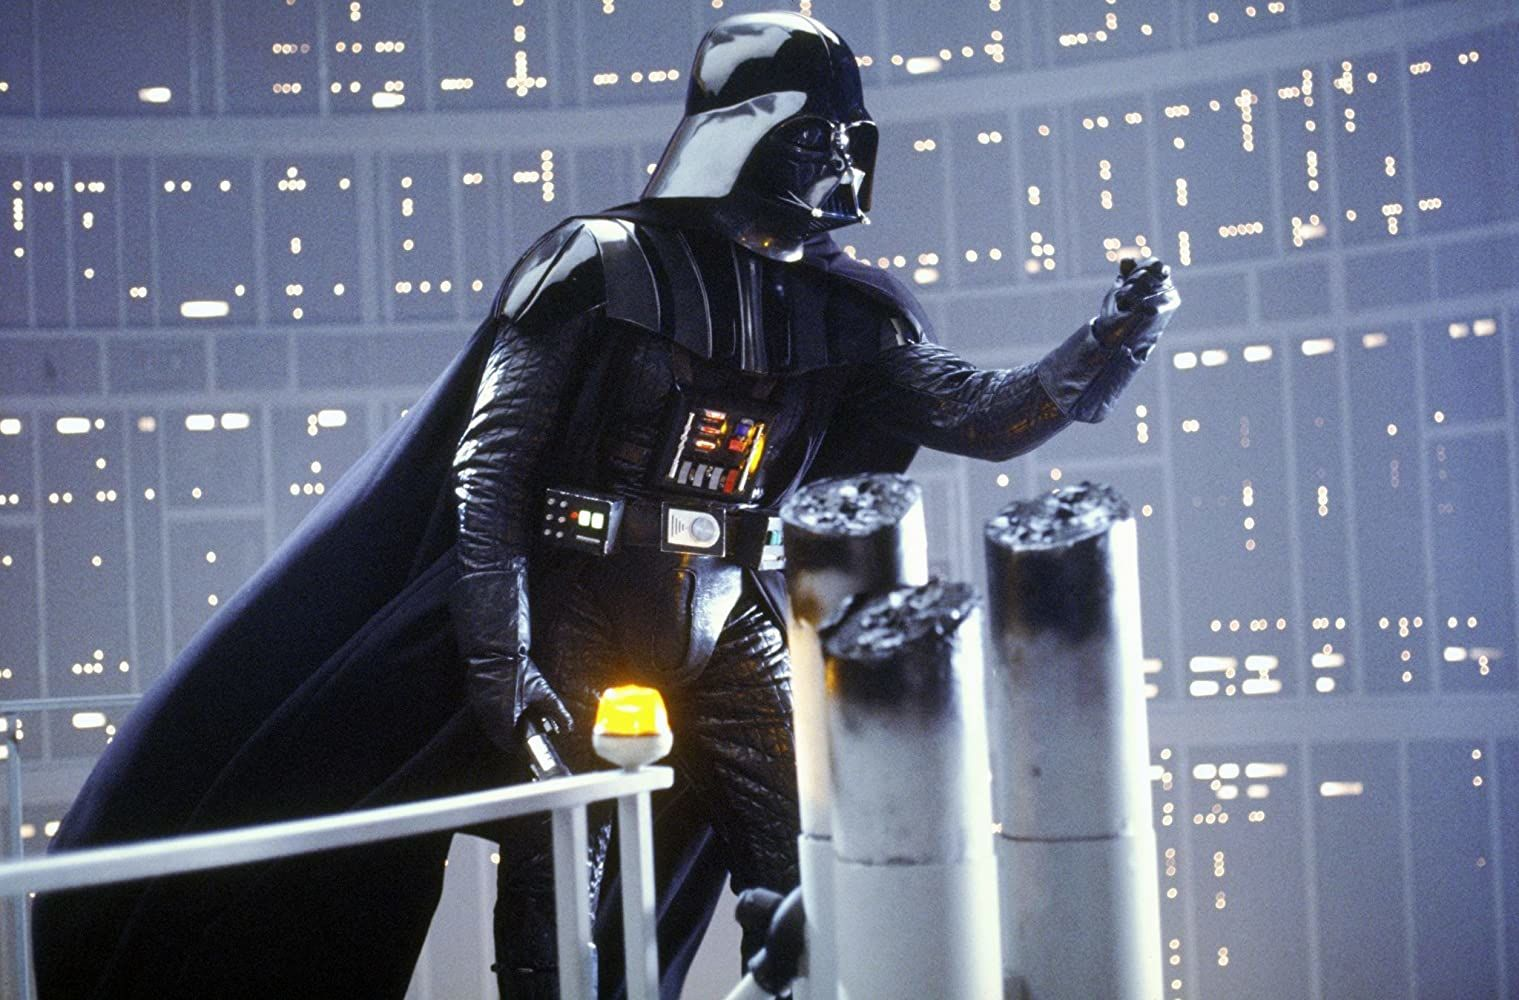 Darth Vader-cosplaying lottery winner in Jamaica scores $95 million, could fund new Death Star